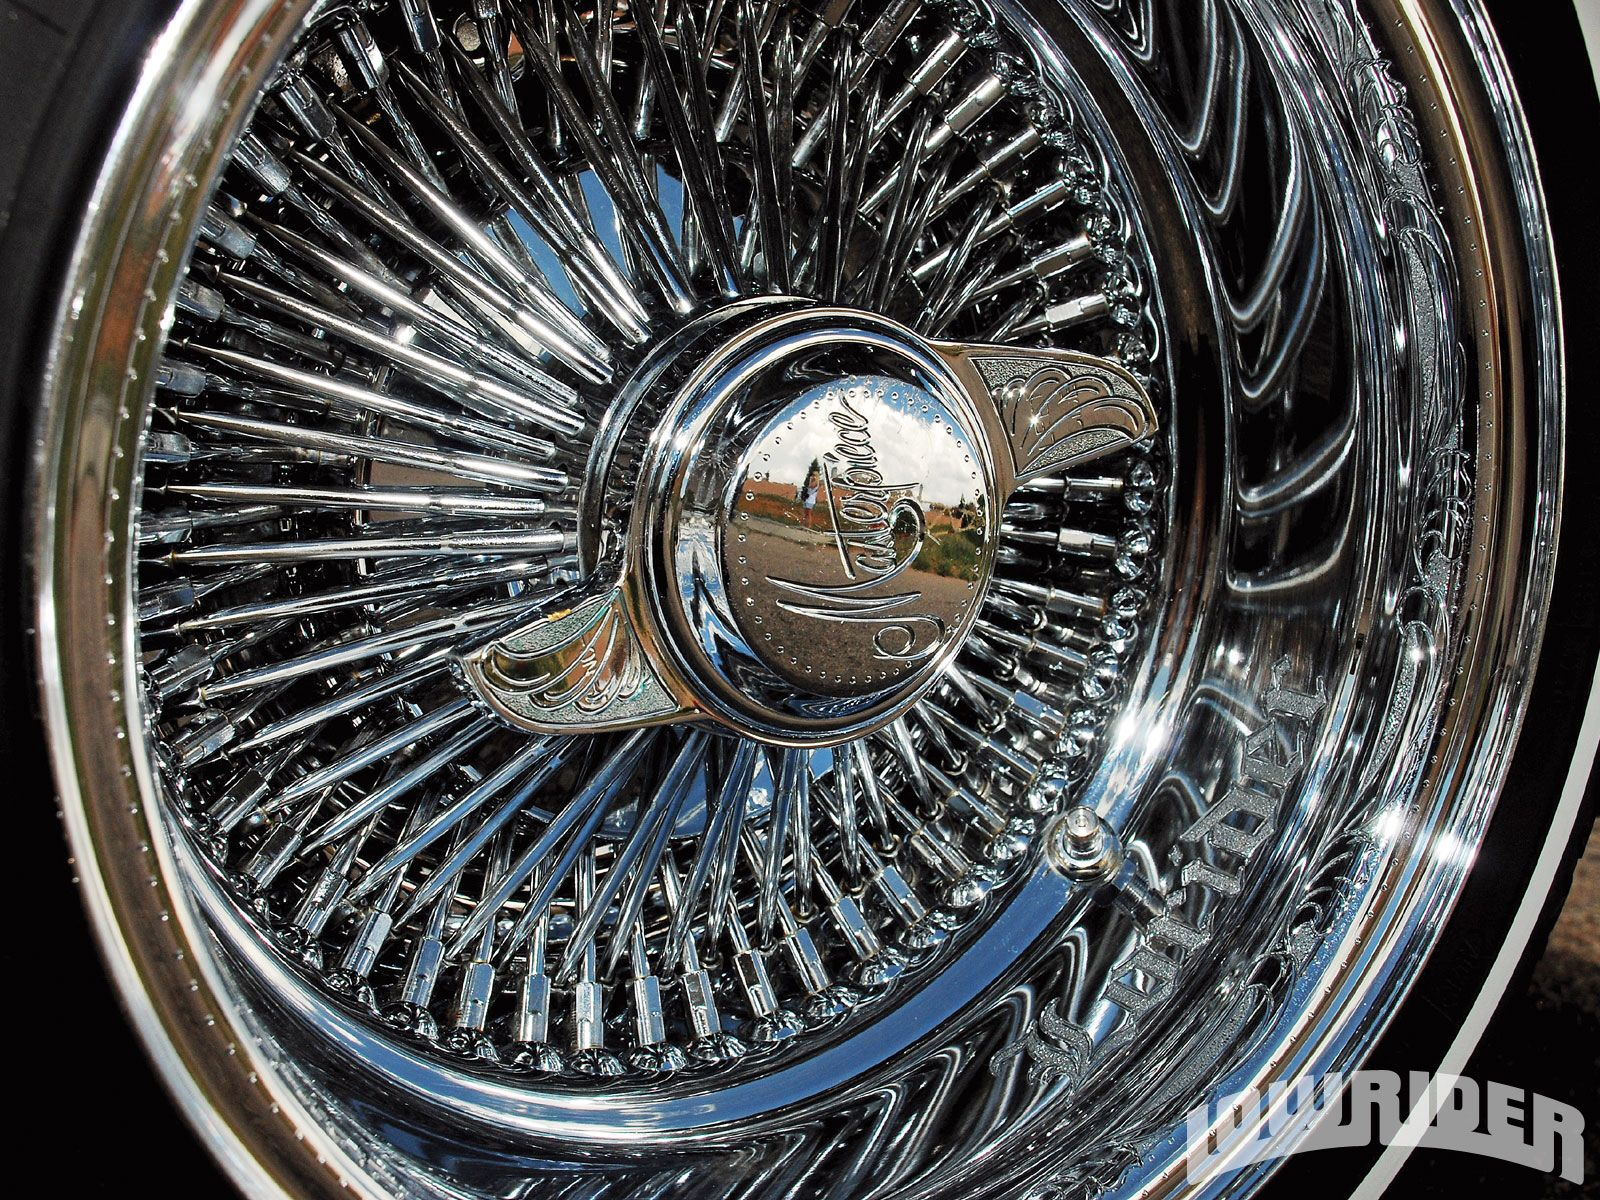 Masterpiece wire wheel | Engraving | Pinterest | Wheels and Hub caps